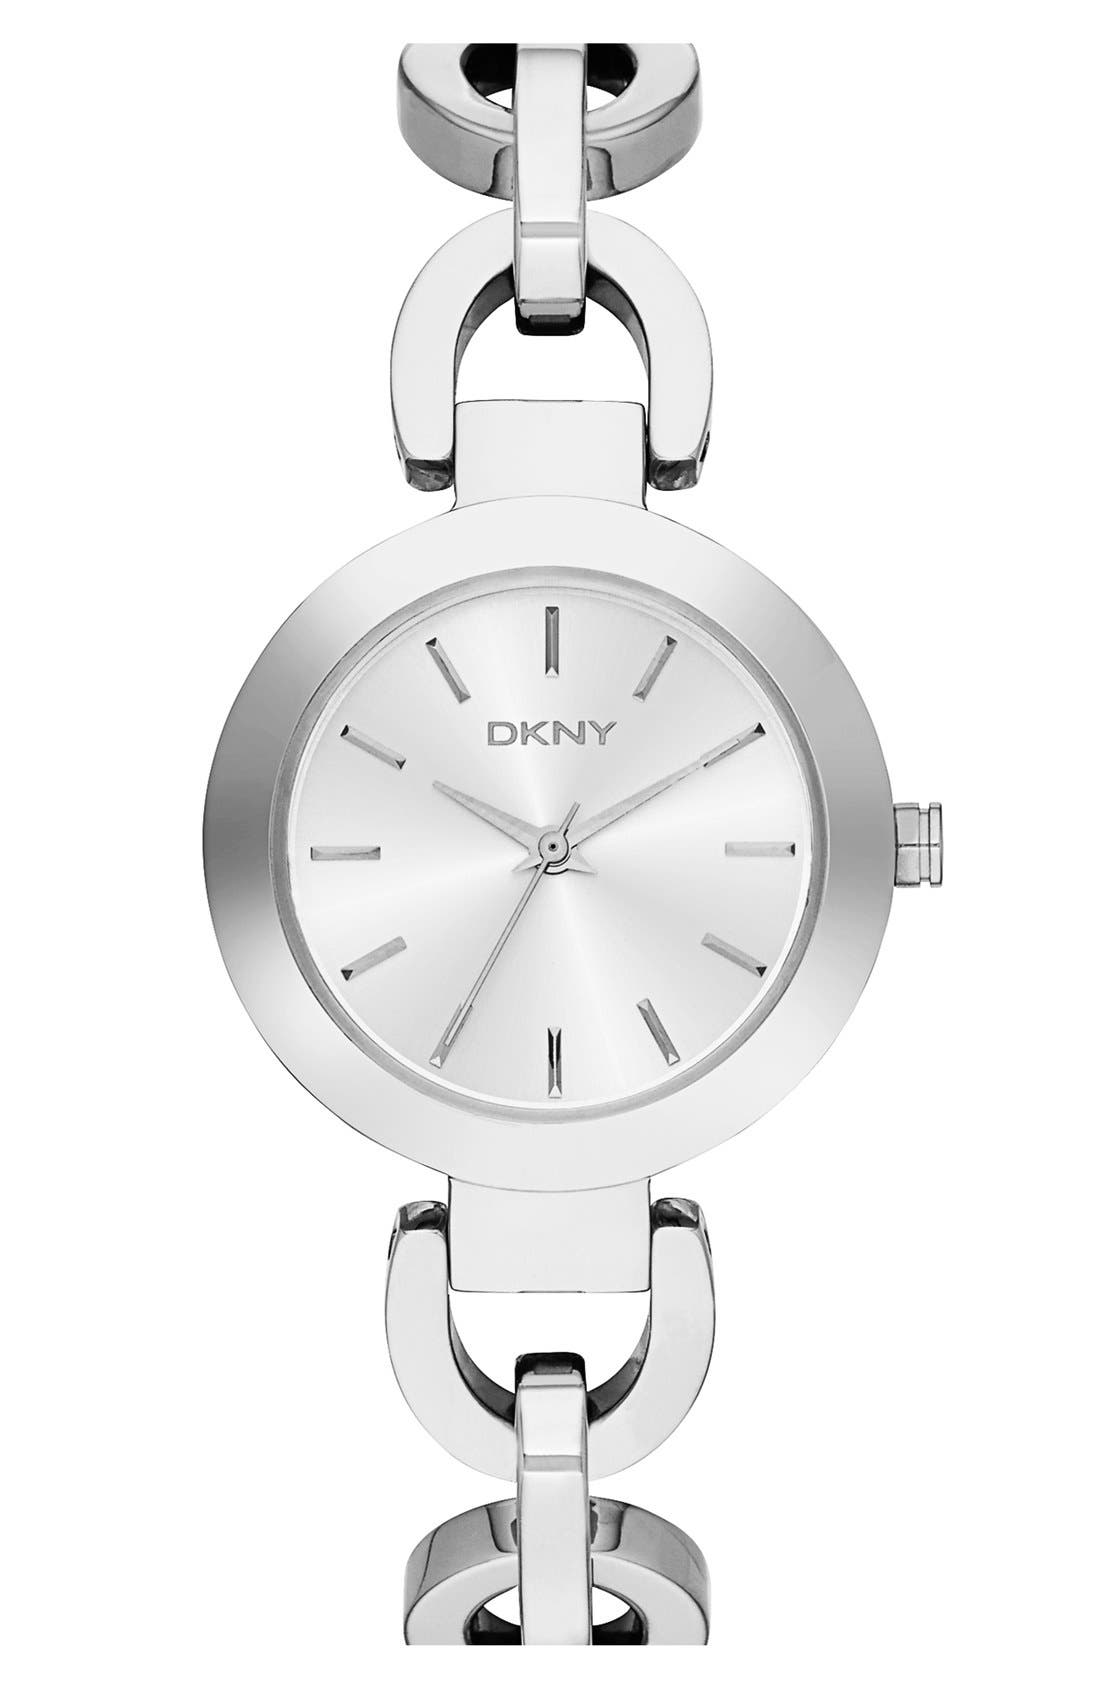 Main Image - DKNY 'Stanhope' Chain Link Bracelet Watch, 28mm